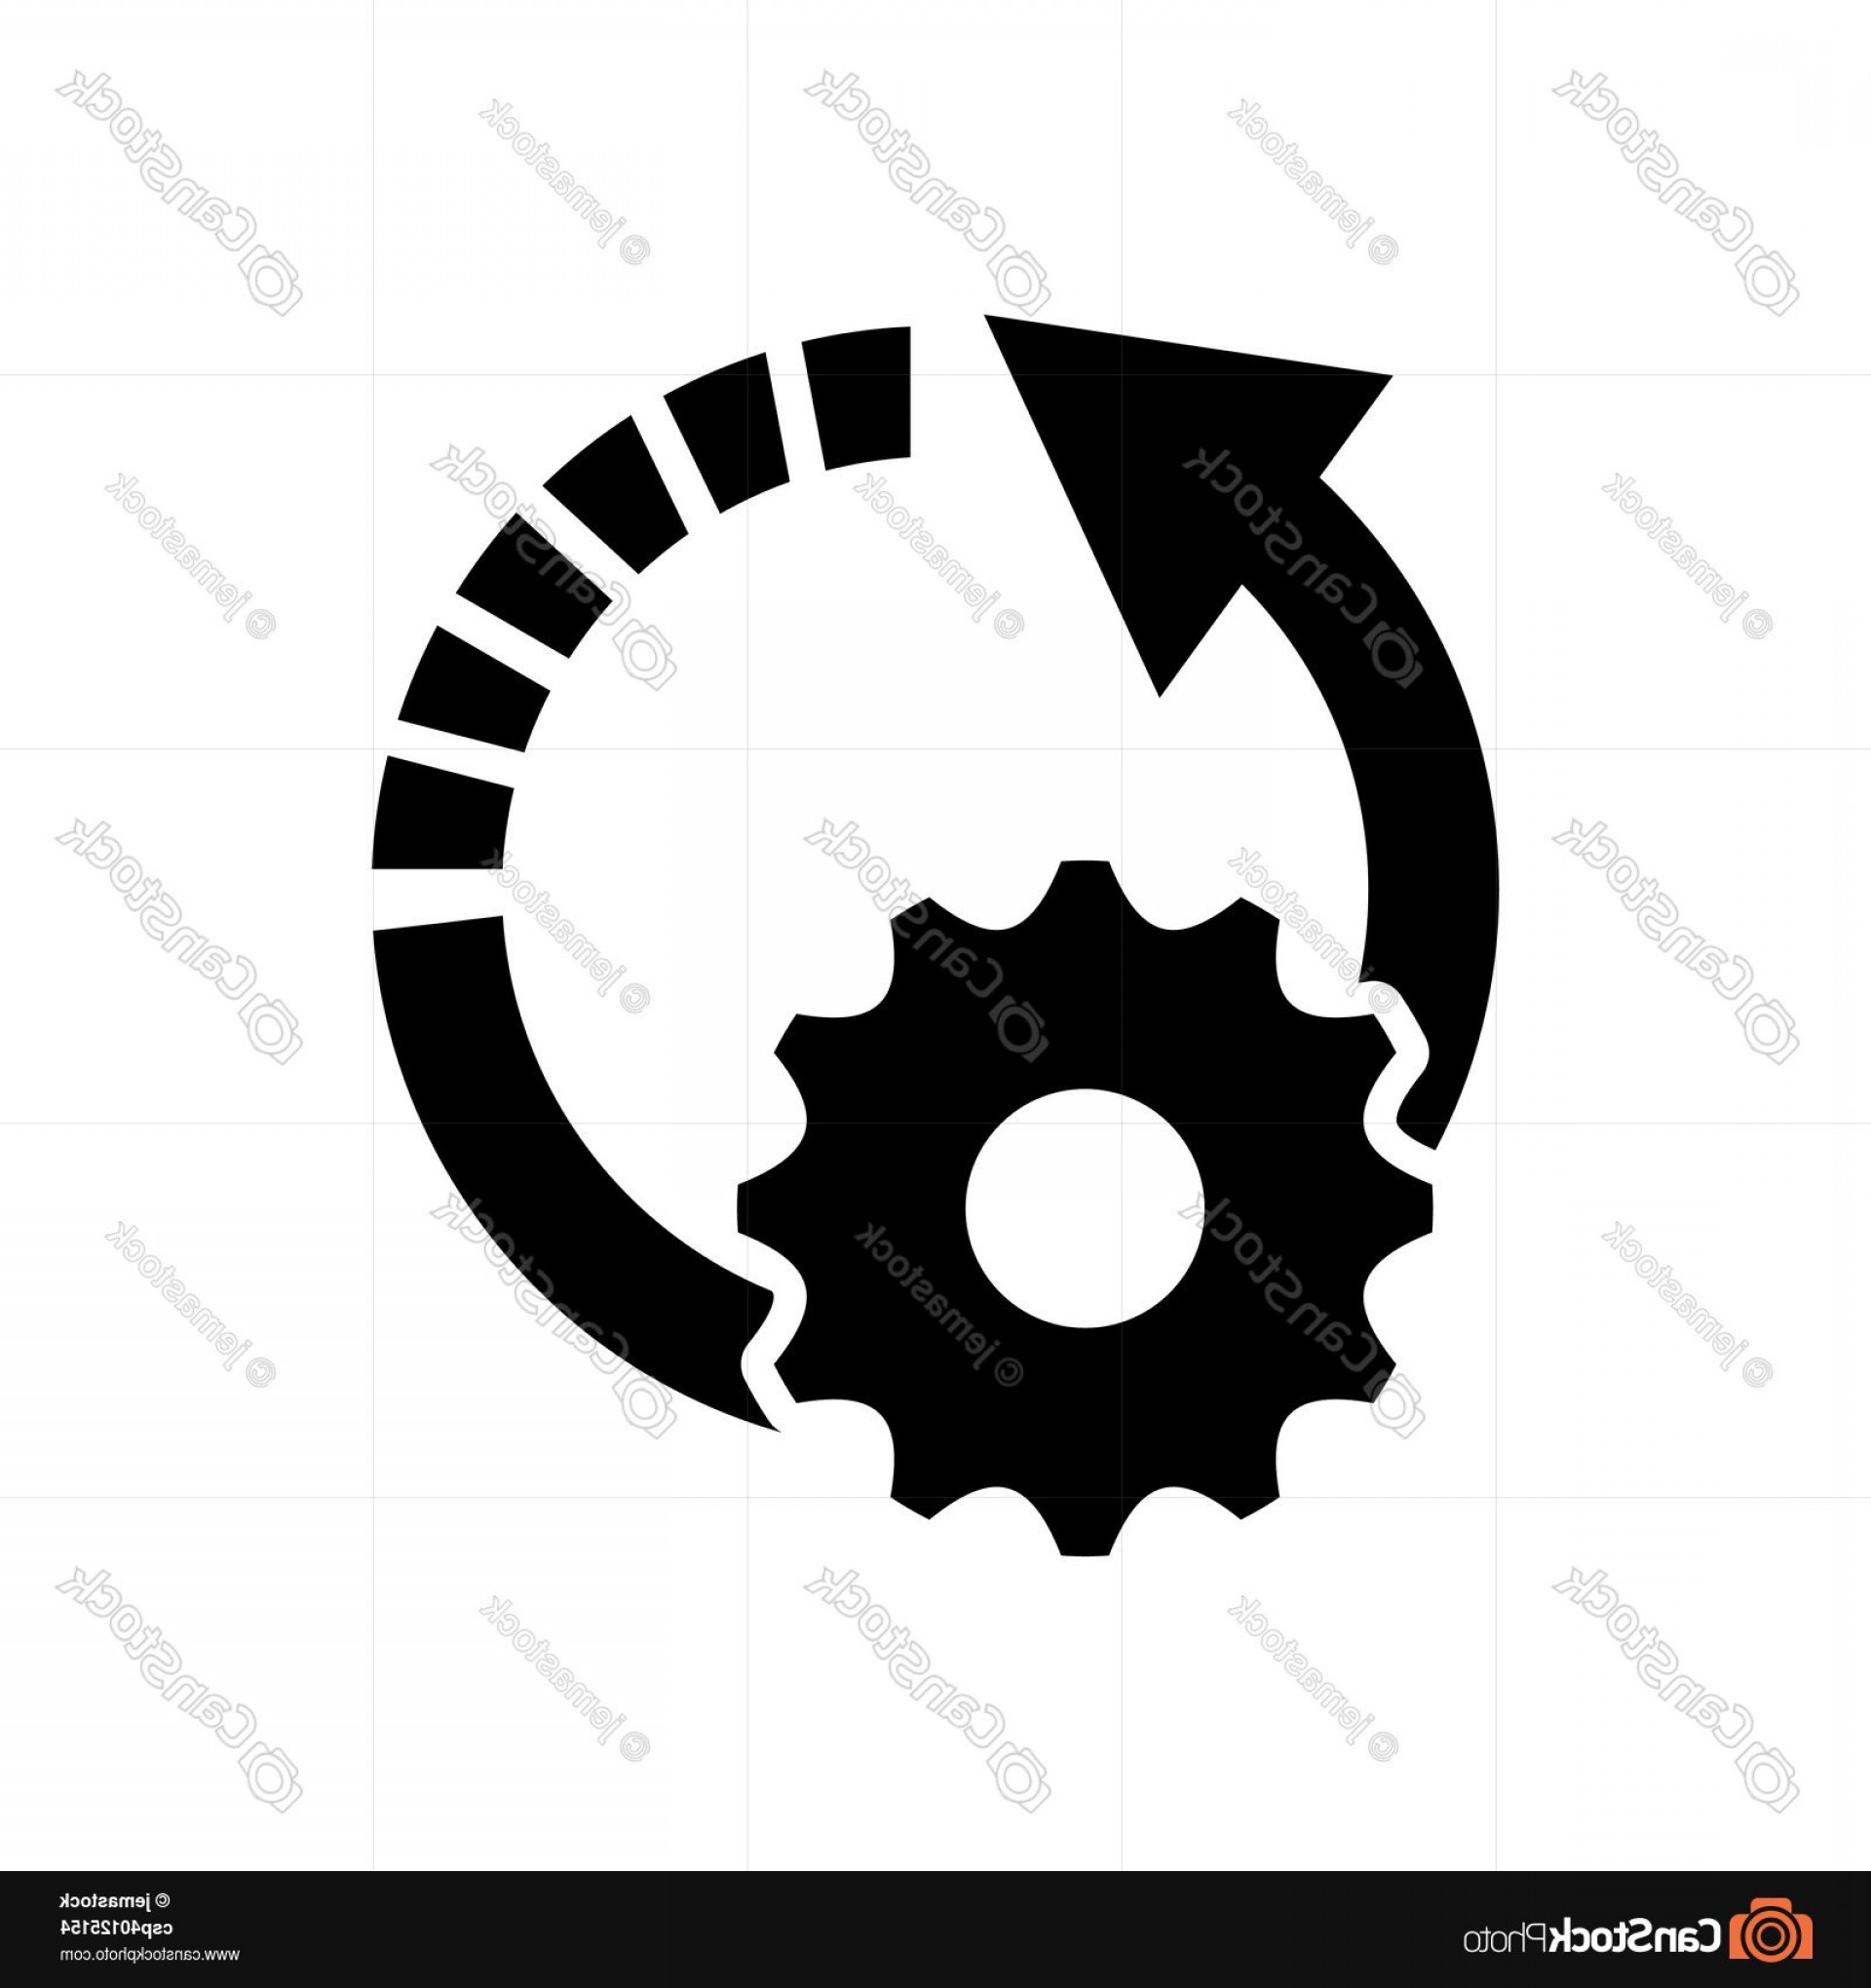 Vector Gear Graphics: Circle Arrow And Gear Icon